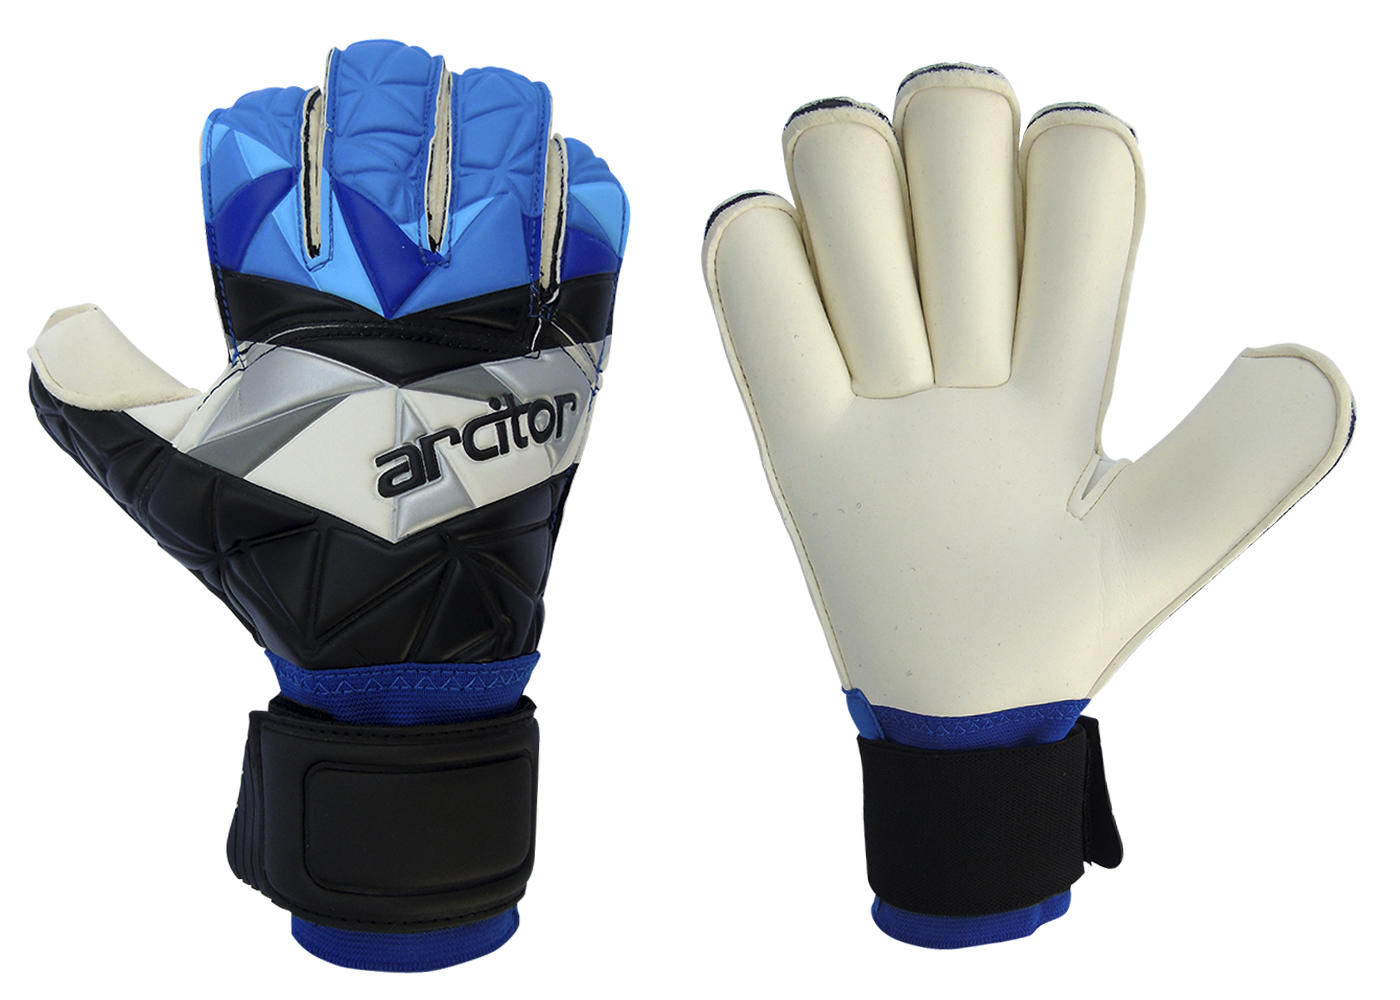 Palaso Black and Blue Goalkeeping Gloves